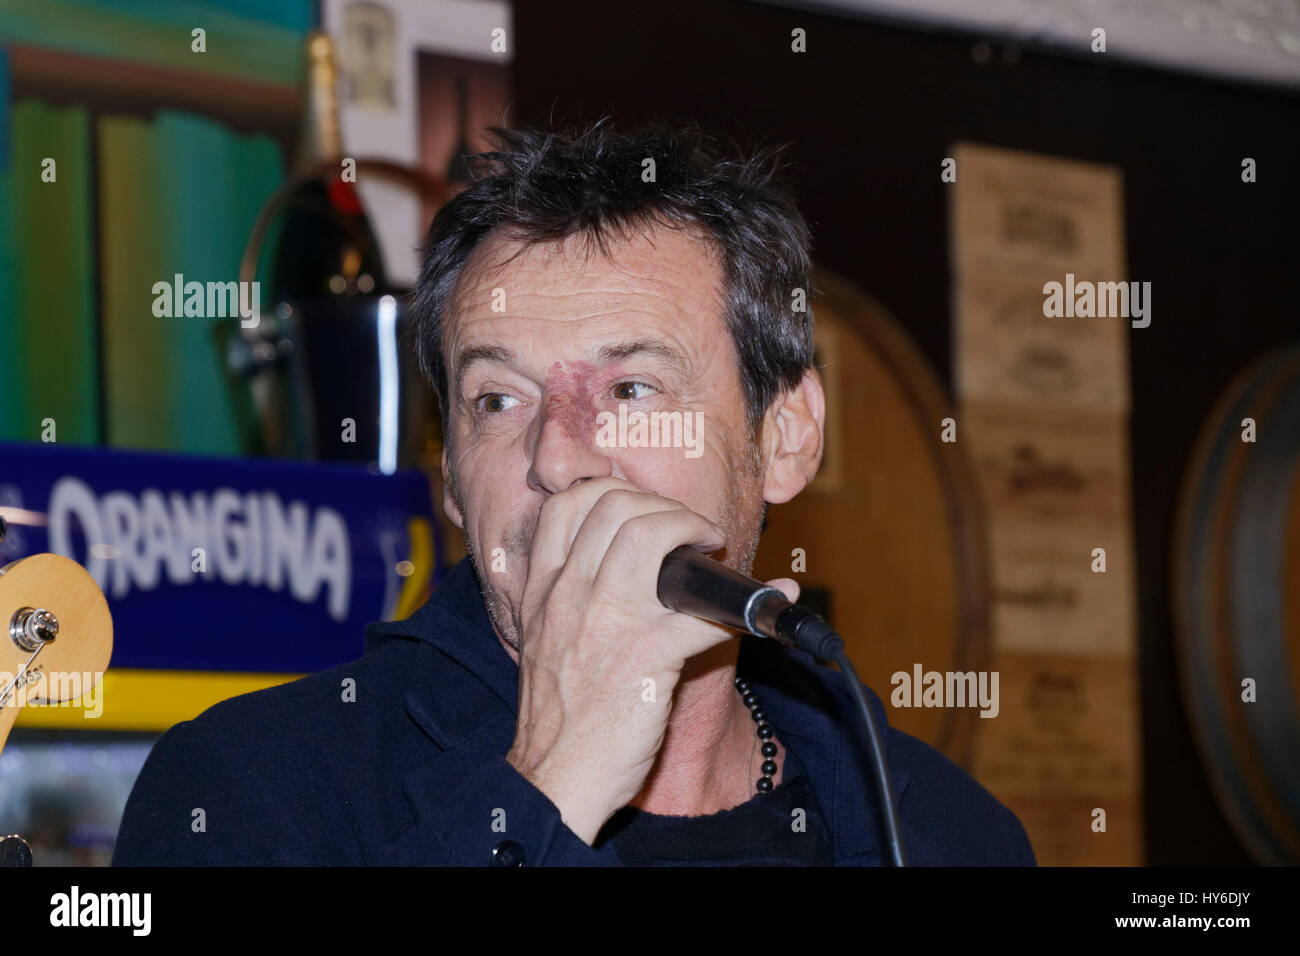 Paris, France. 31th March, 2017. Jean-Luc Reichmann sings at Opening evening of the 2017 Throne Fair for the benefit Stock Photo